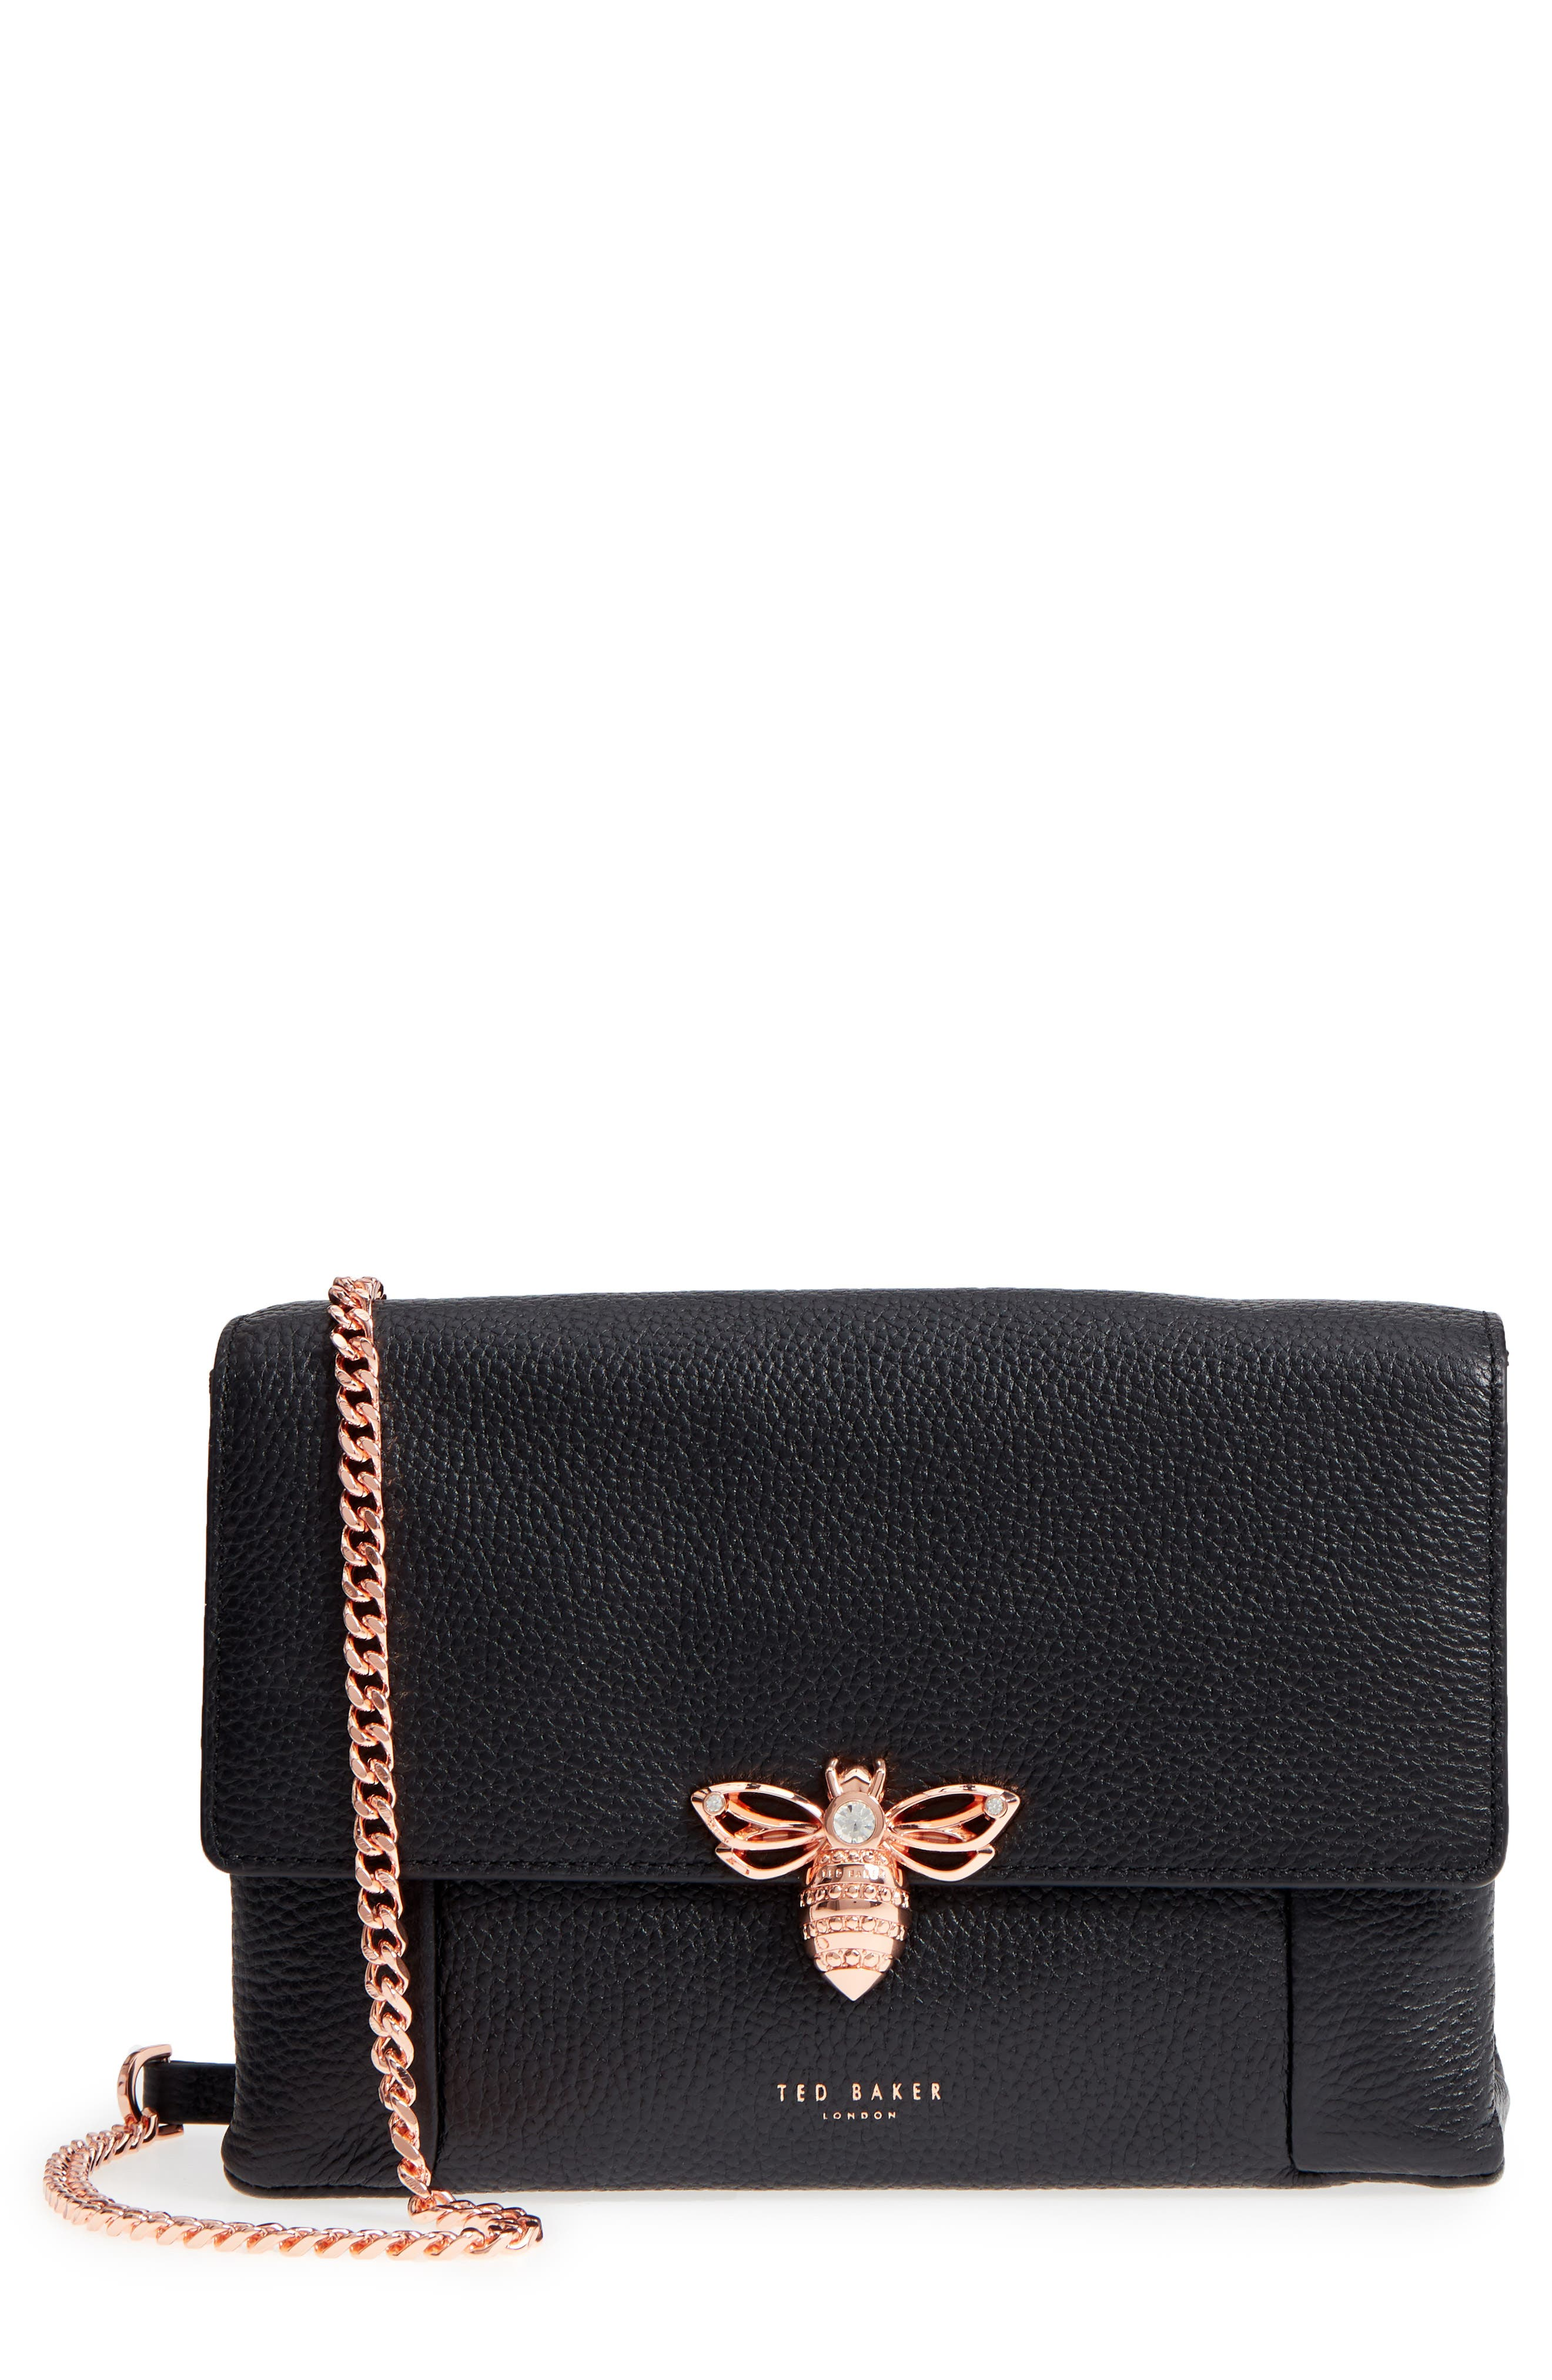 TED BAKER LONDON,                             Zzlee Bee Embellished Crossbody Bag,                             Main thumbnail 1, color,                             001